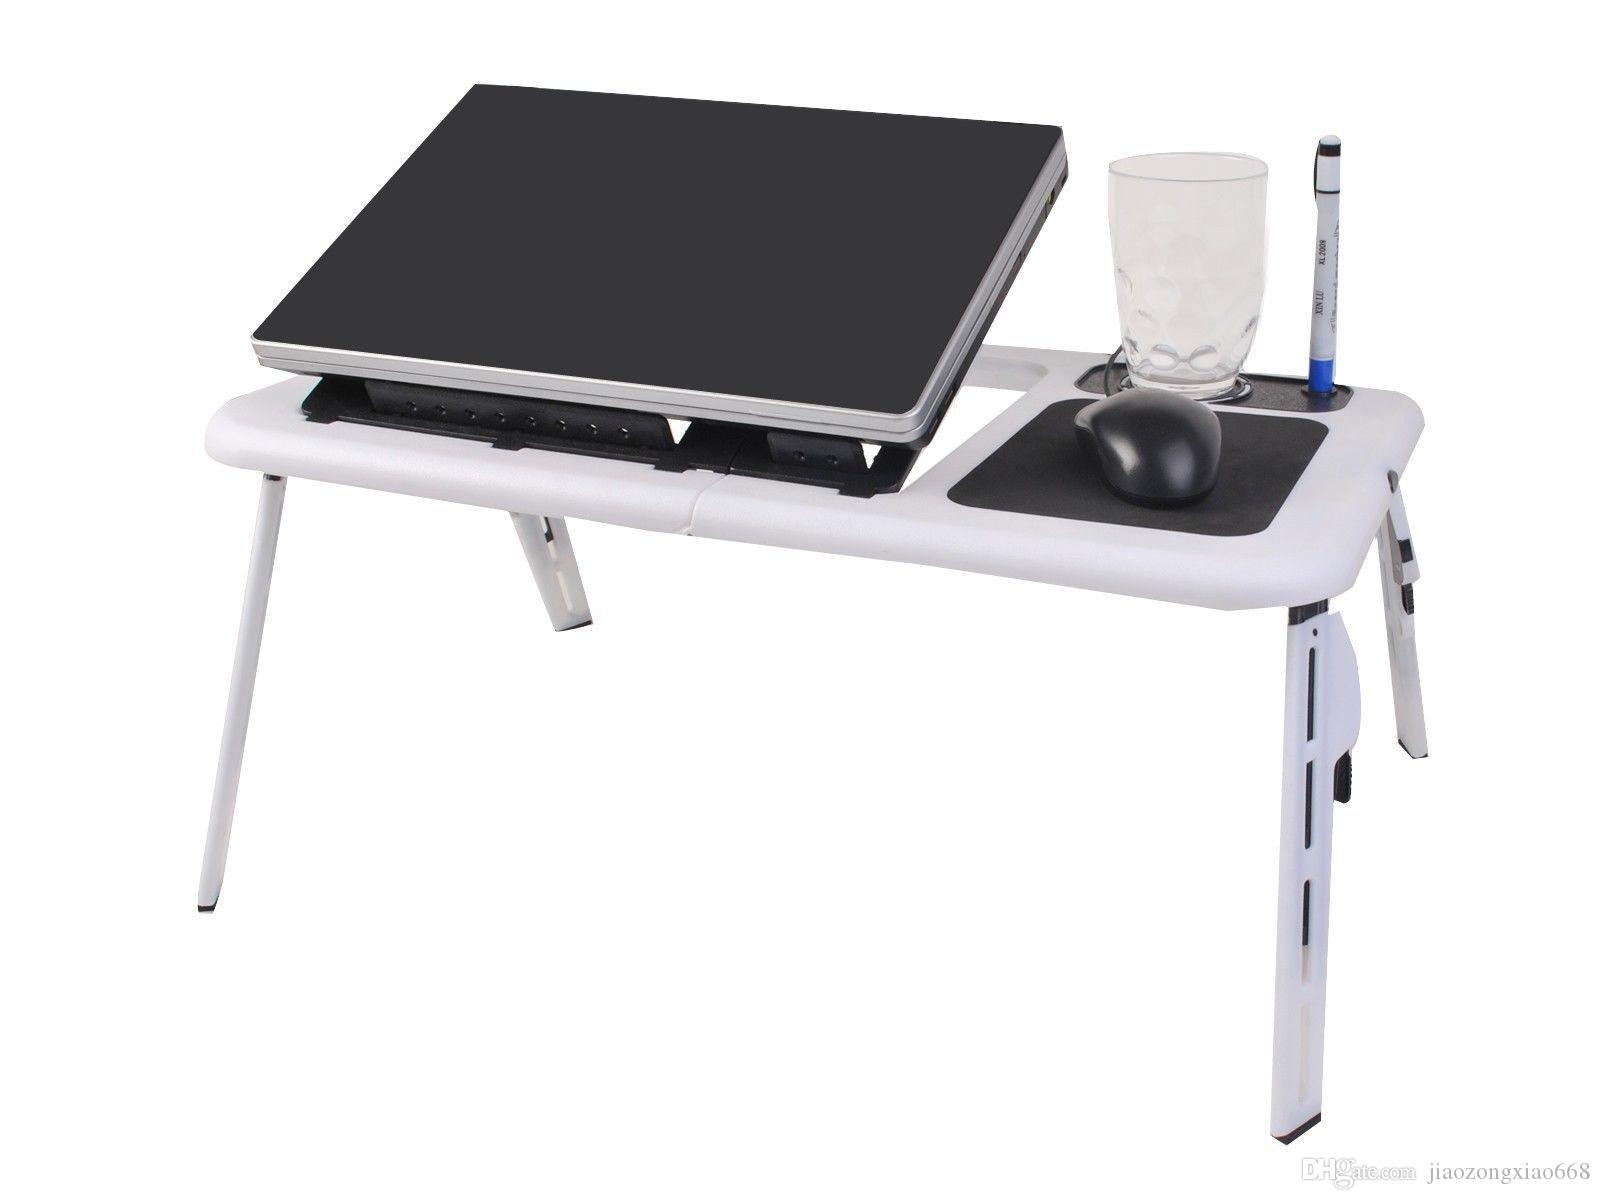 2018 Foldable Laptop Table Tray Desk W/Cooling Fan Tablet Desk Stand Bed  Sofa Couch From Jiaozongxiao668, $20.1 | Dhgate.Com